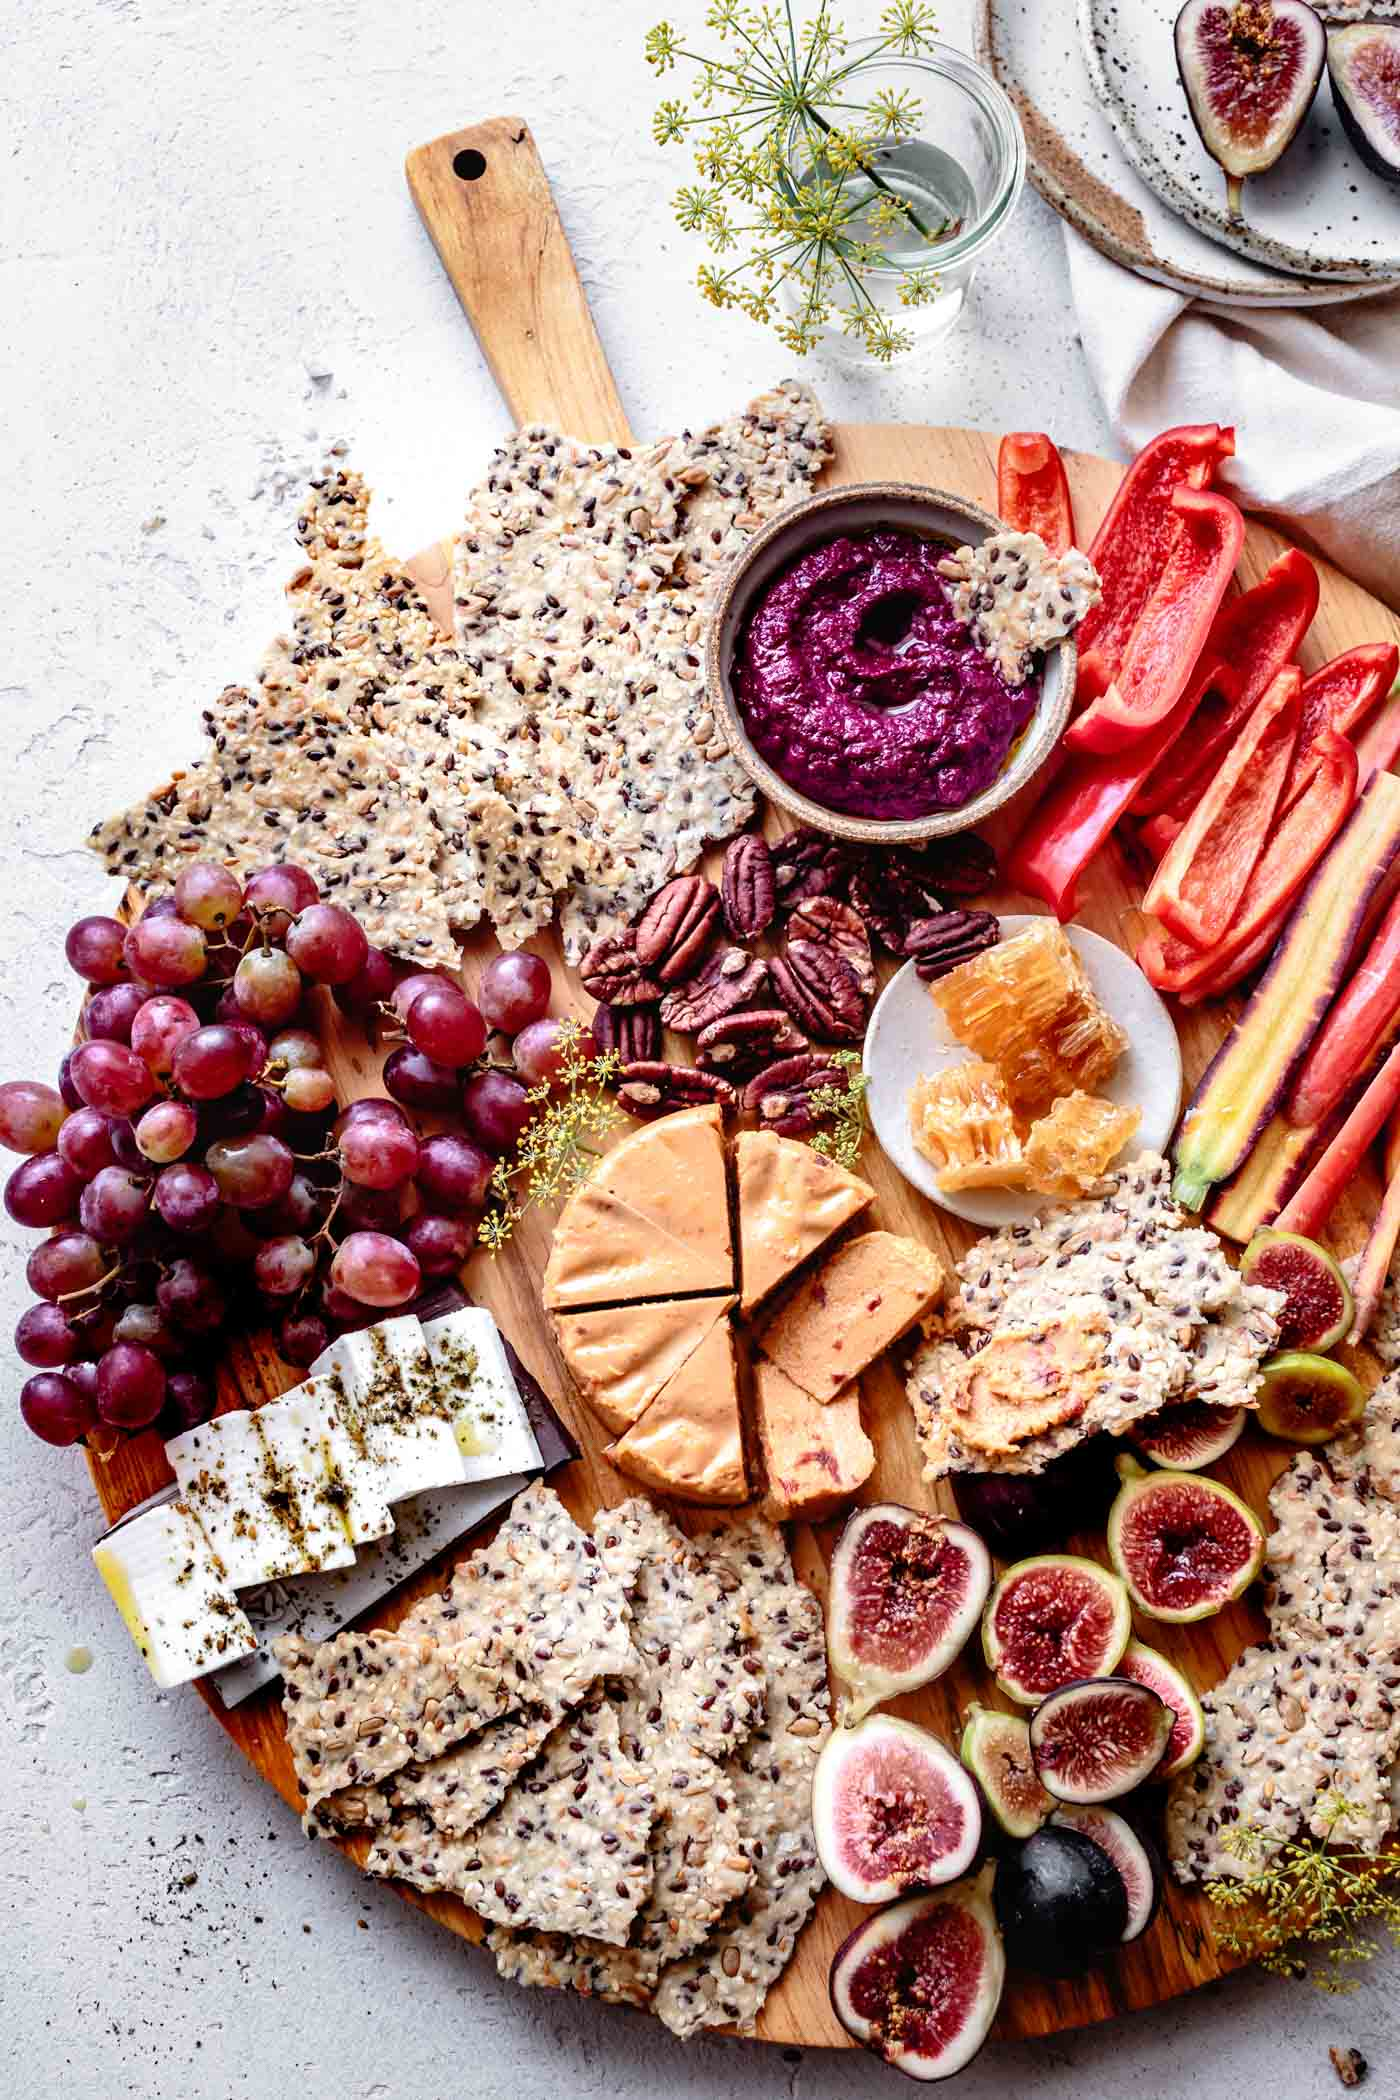 grain-free crackers recipe and a festive cheeseboard